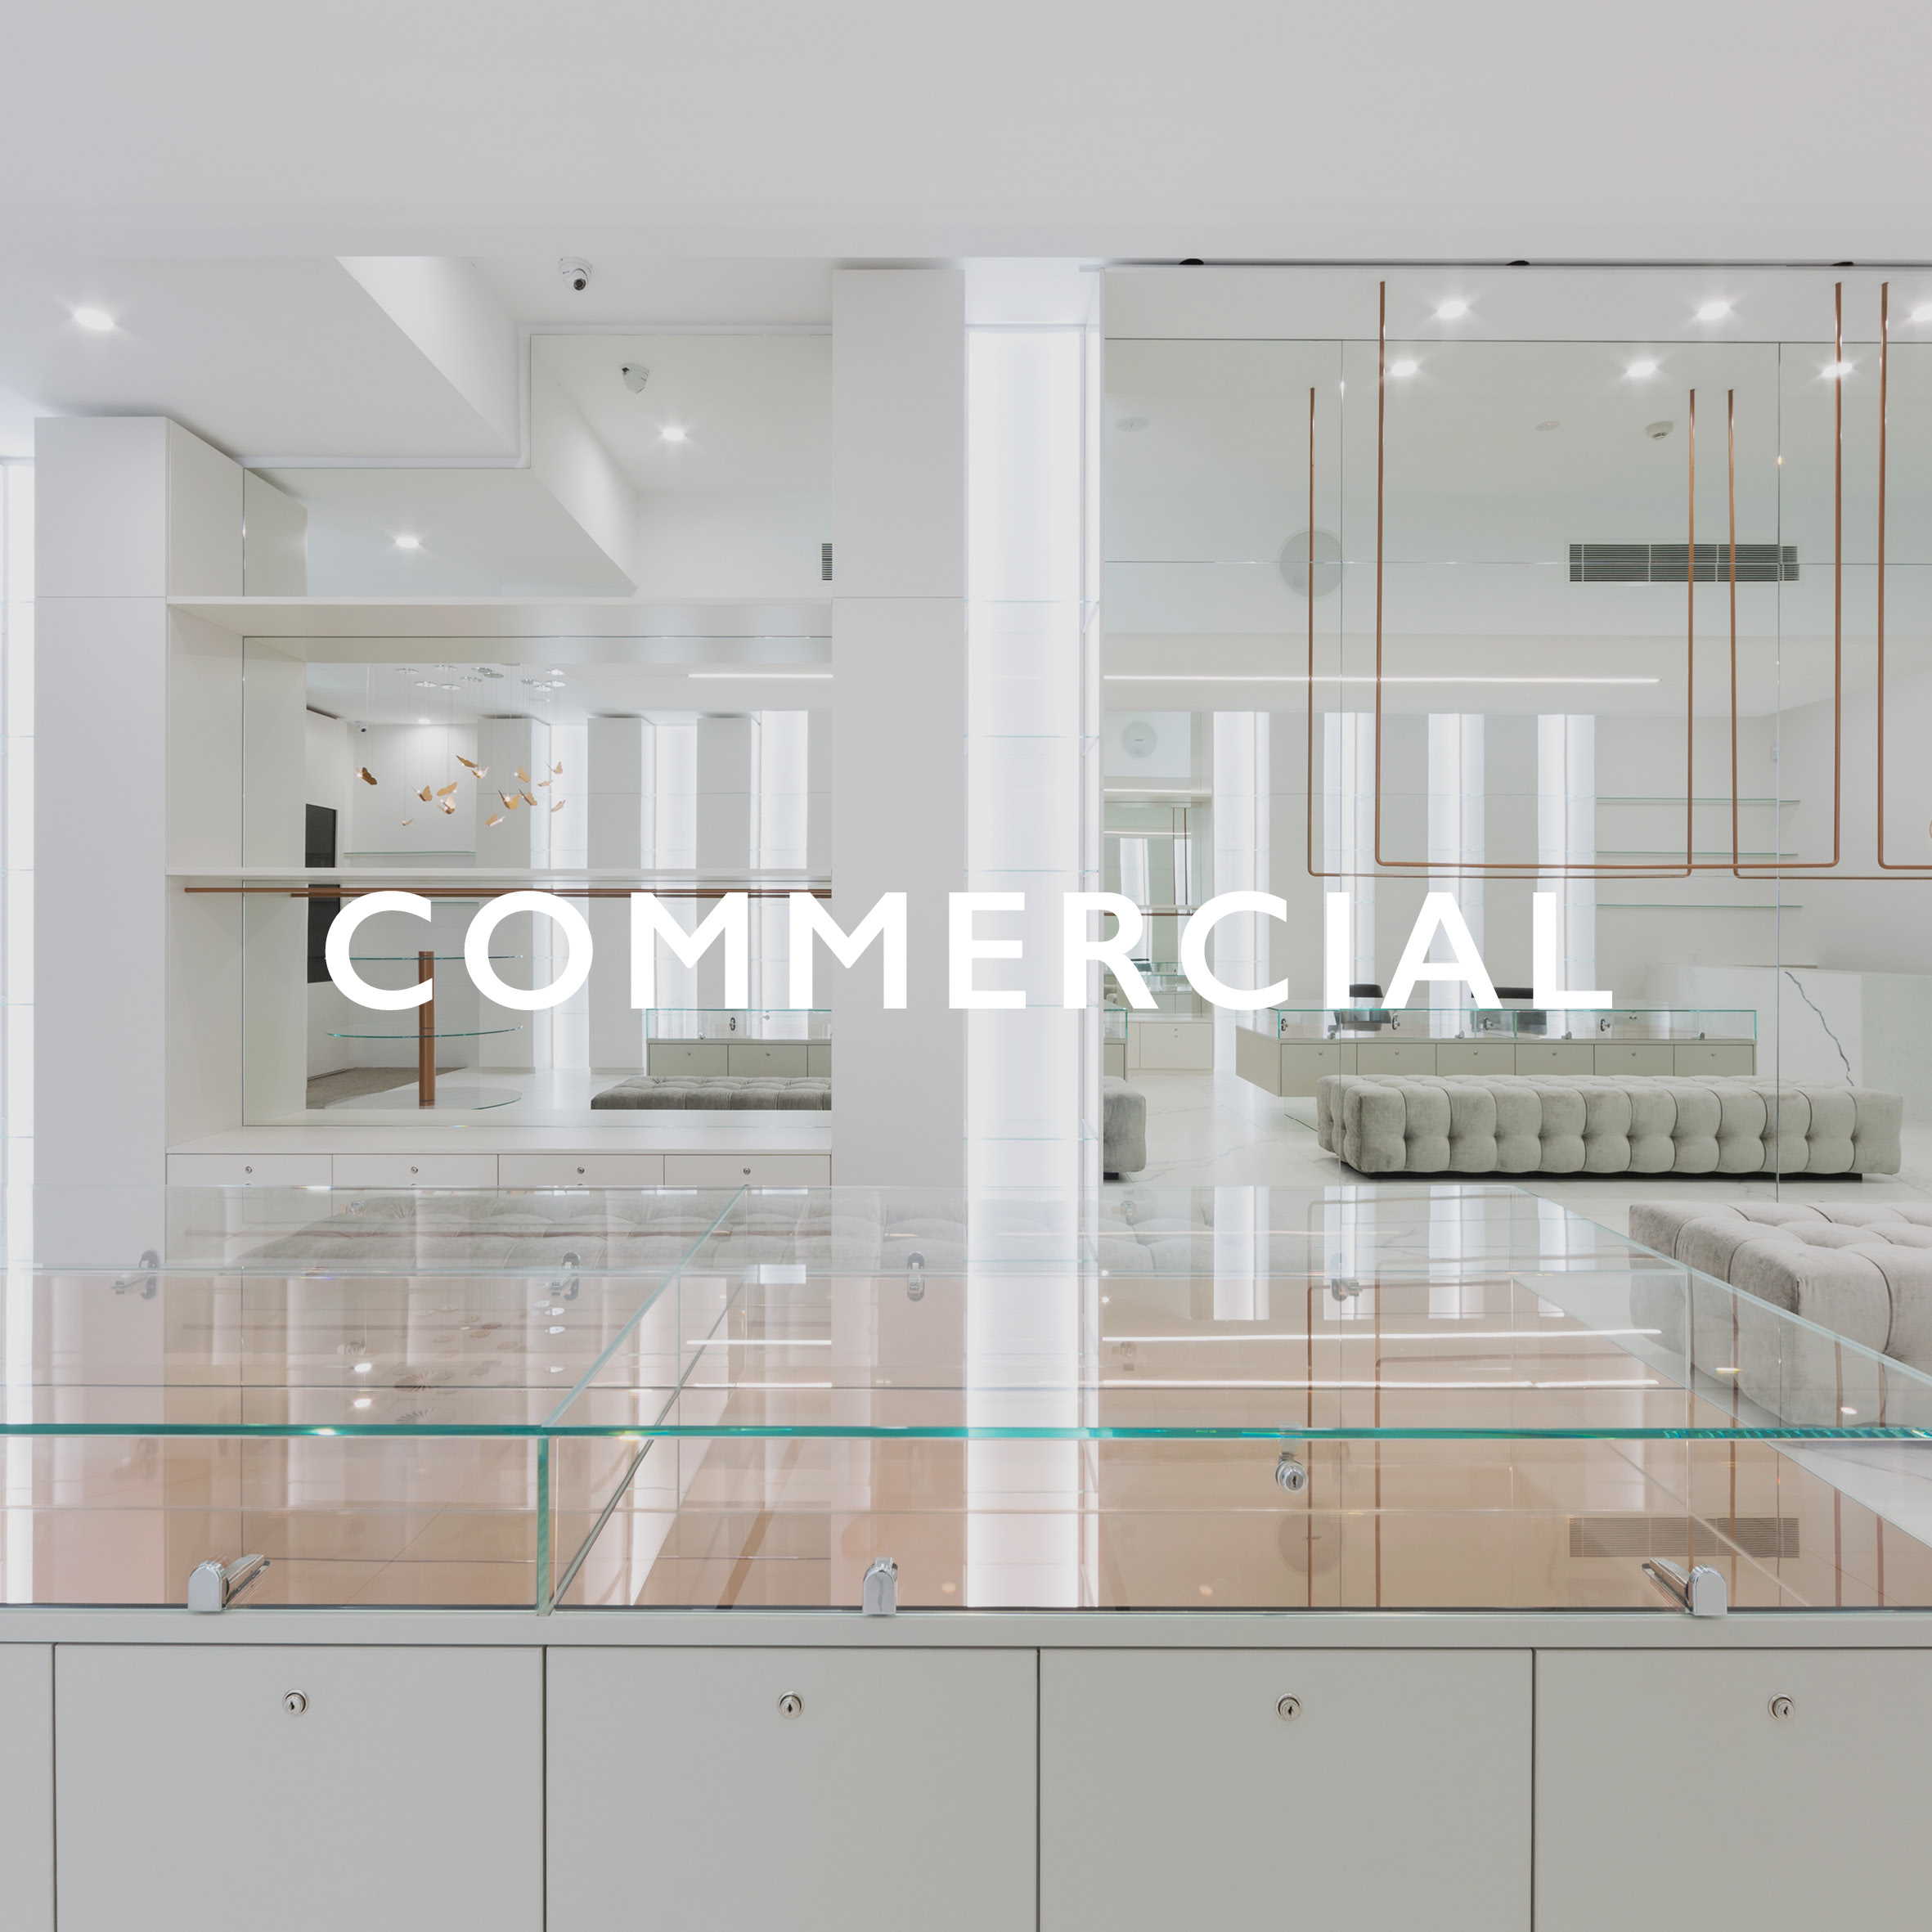 We specialise in both commercial and residential interior and building design and were capable of managing your build from start to finish